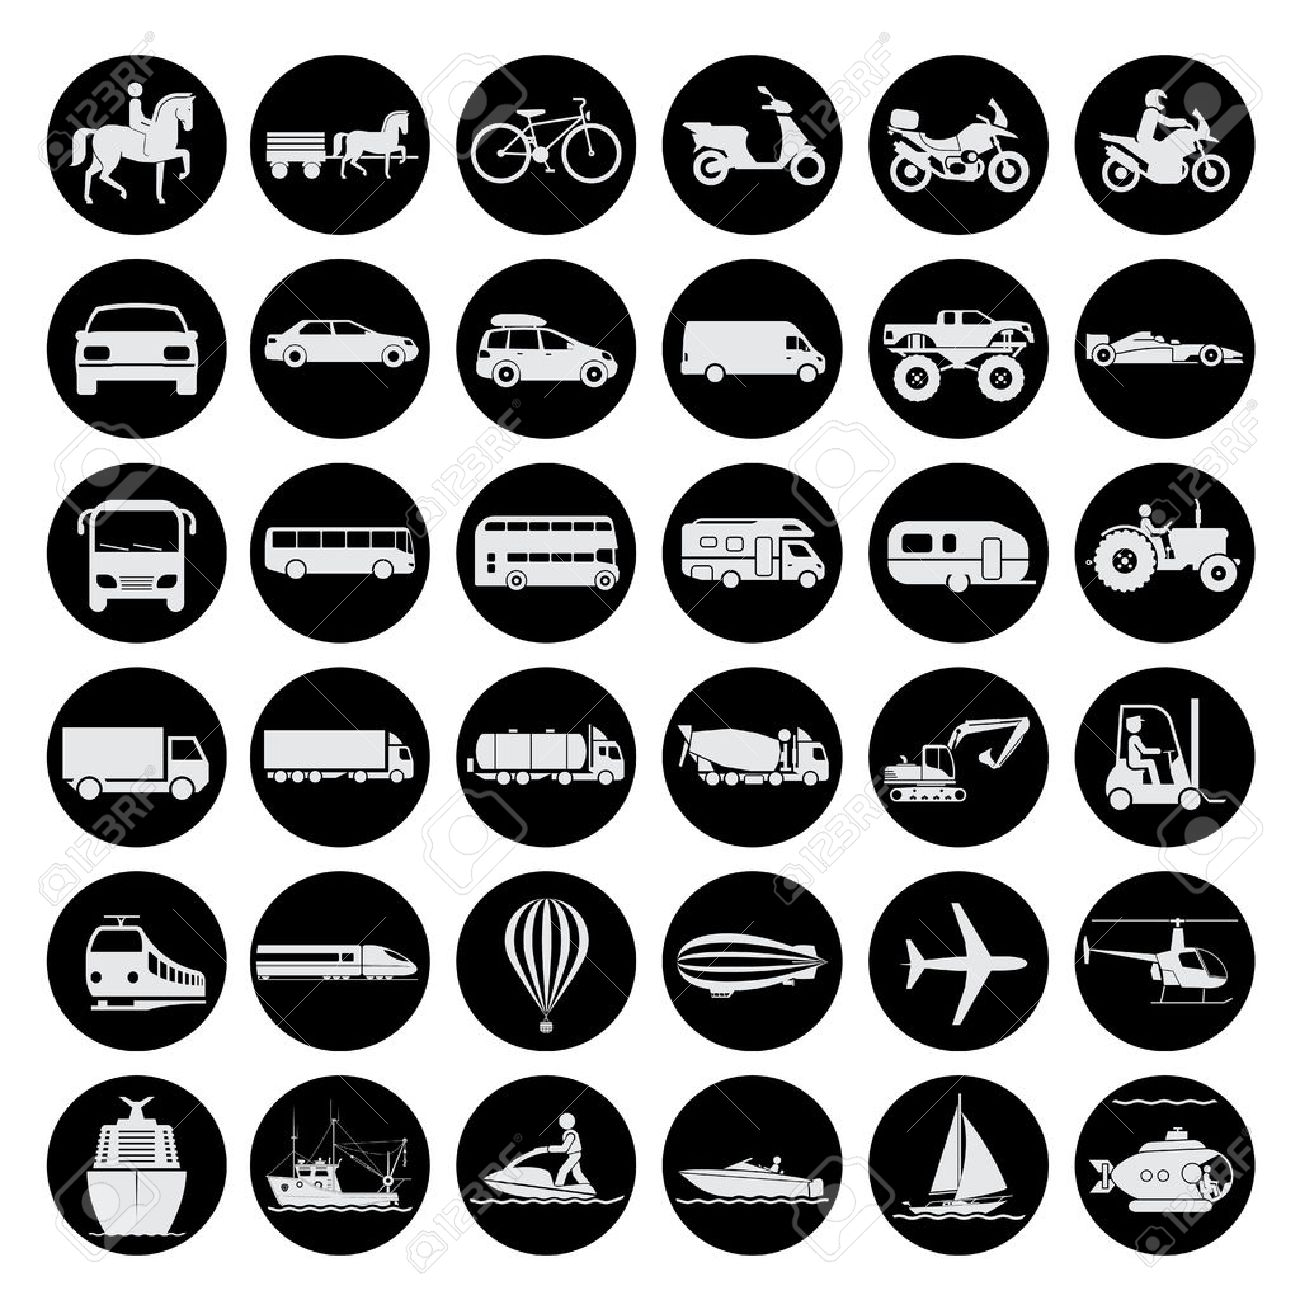 Collection of signs presenting different modes of transport on land, water and in the air. Vintage and modern means of transportation. Transportation icons. Stock Vector - 43945332